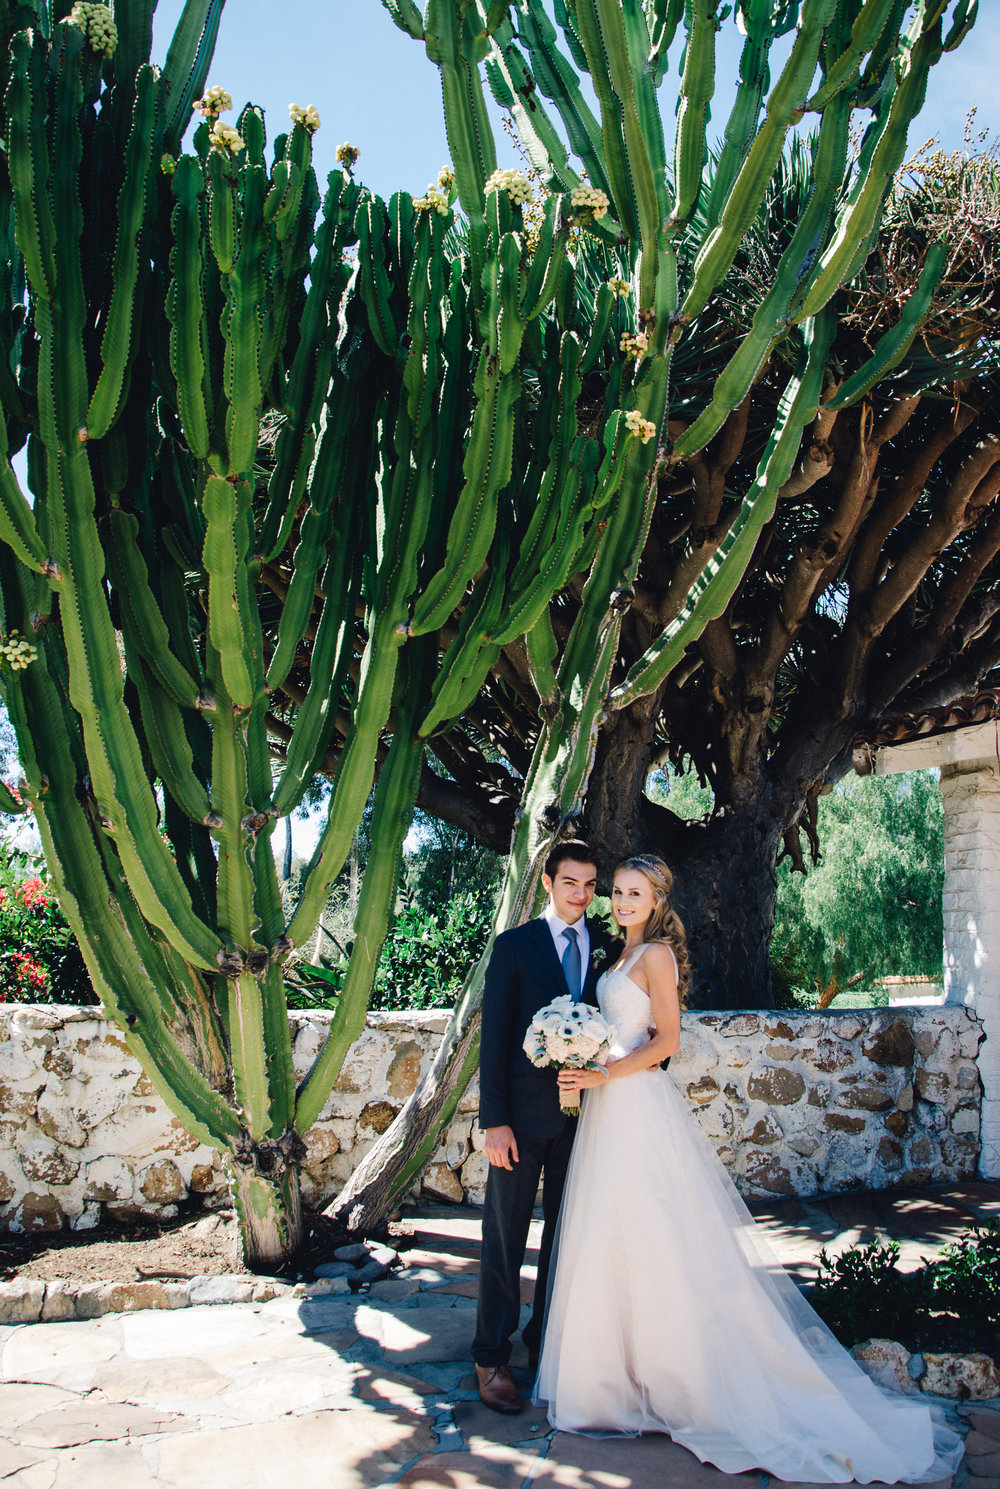 Delightful Austin U0026 Tayloru0027s Romantic San Diego Backyard Wedding